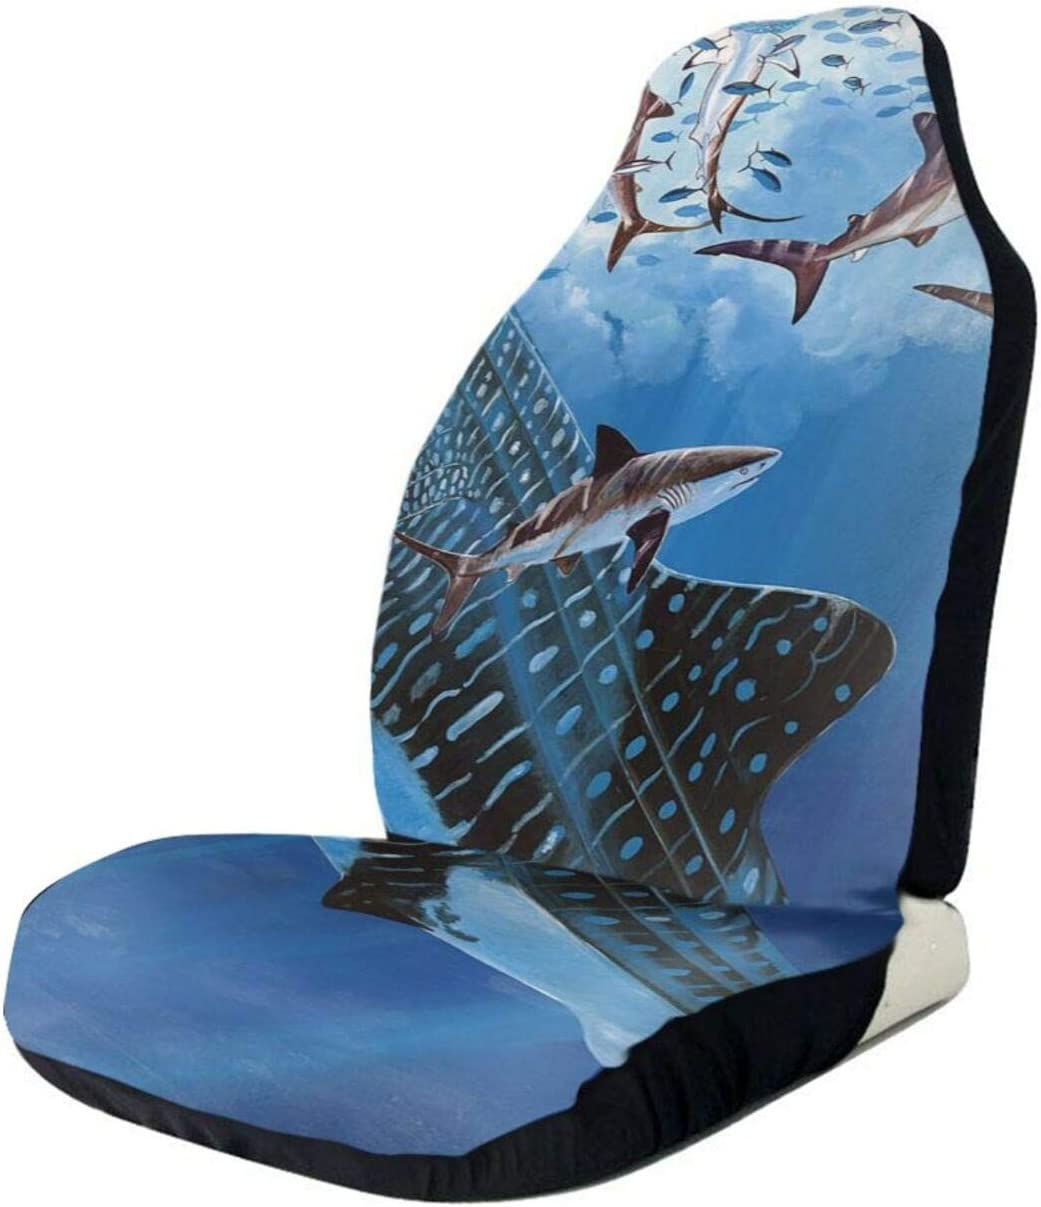 Art Whale Shark Grunge Car Seat Front Full Charlotte Mall Seats Only Buck Max 59% OFF Cover